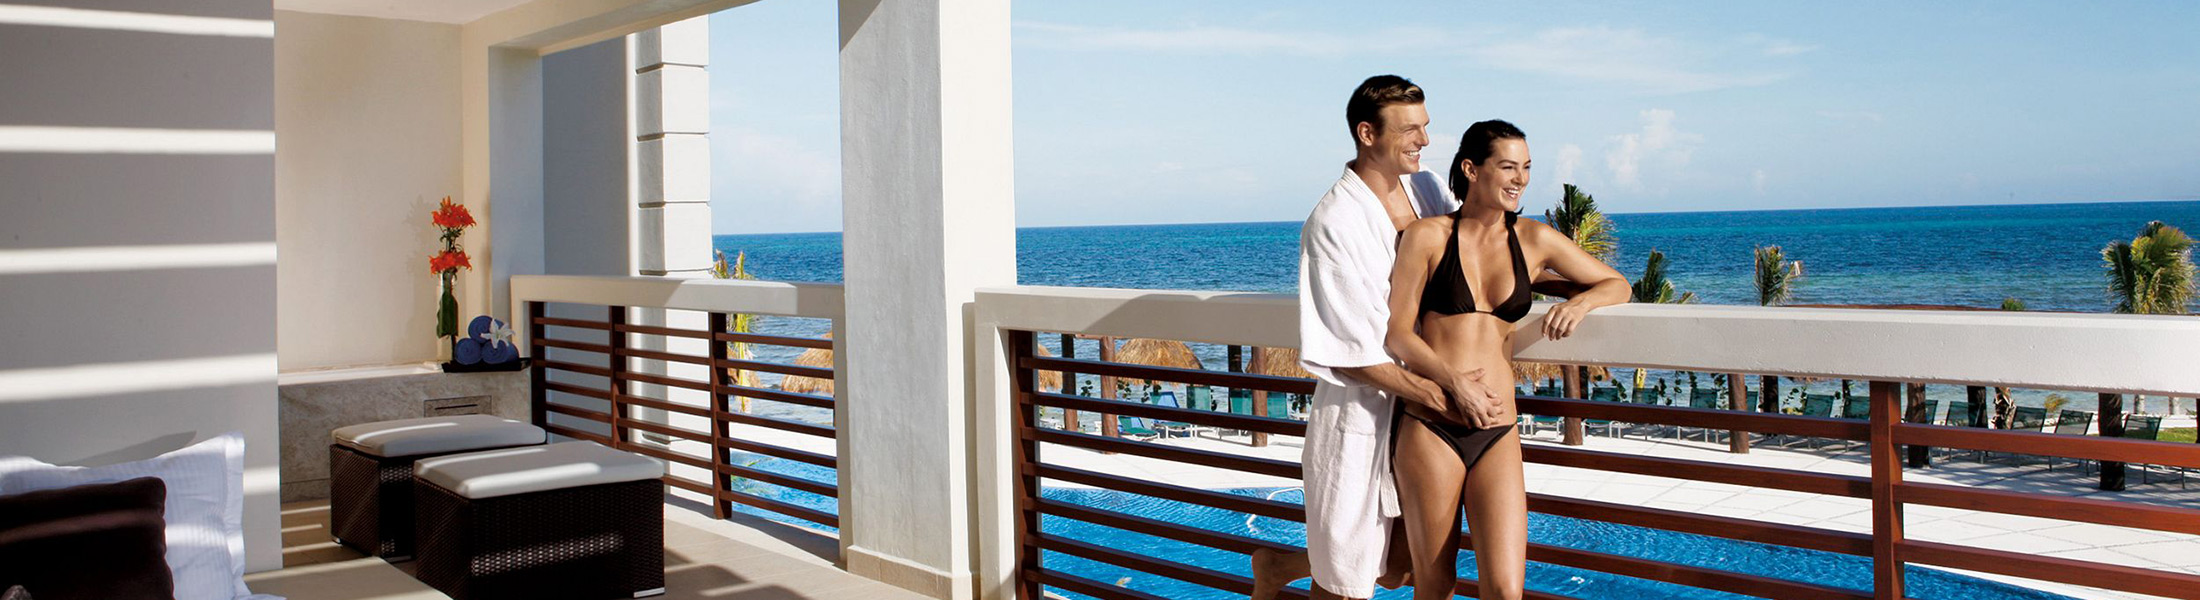 Couple on the balcony overlooking the ocean